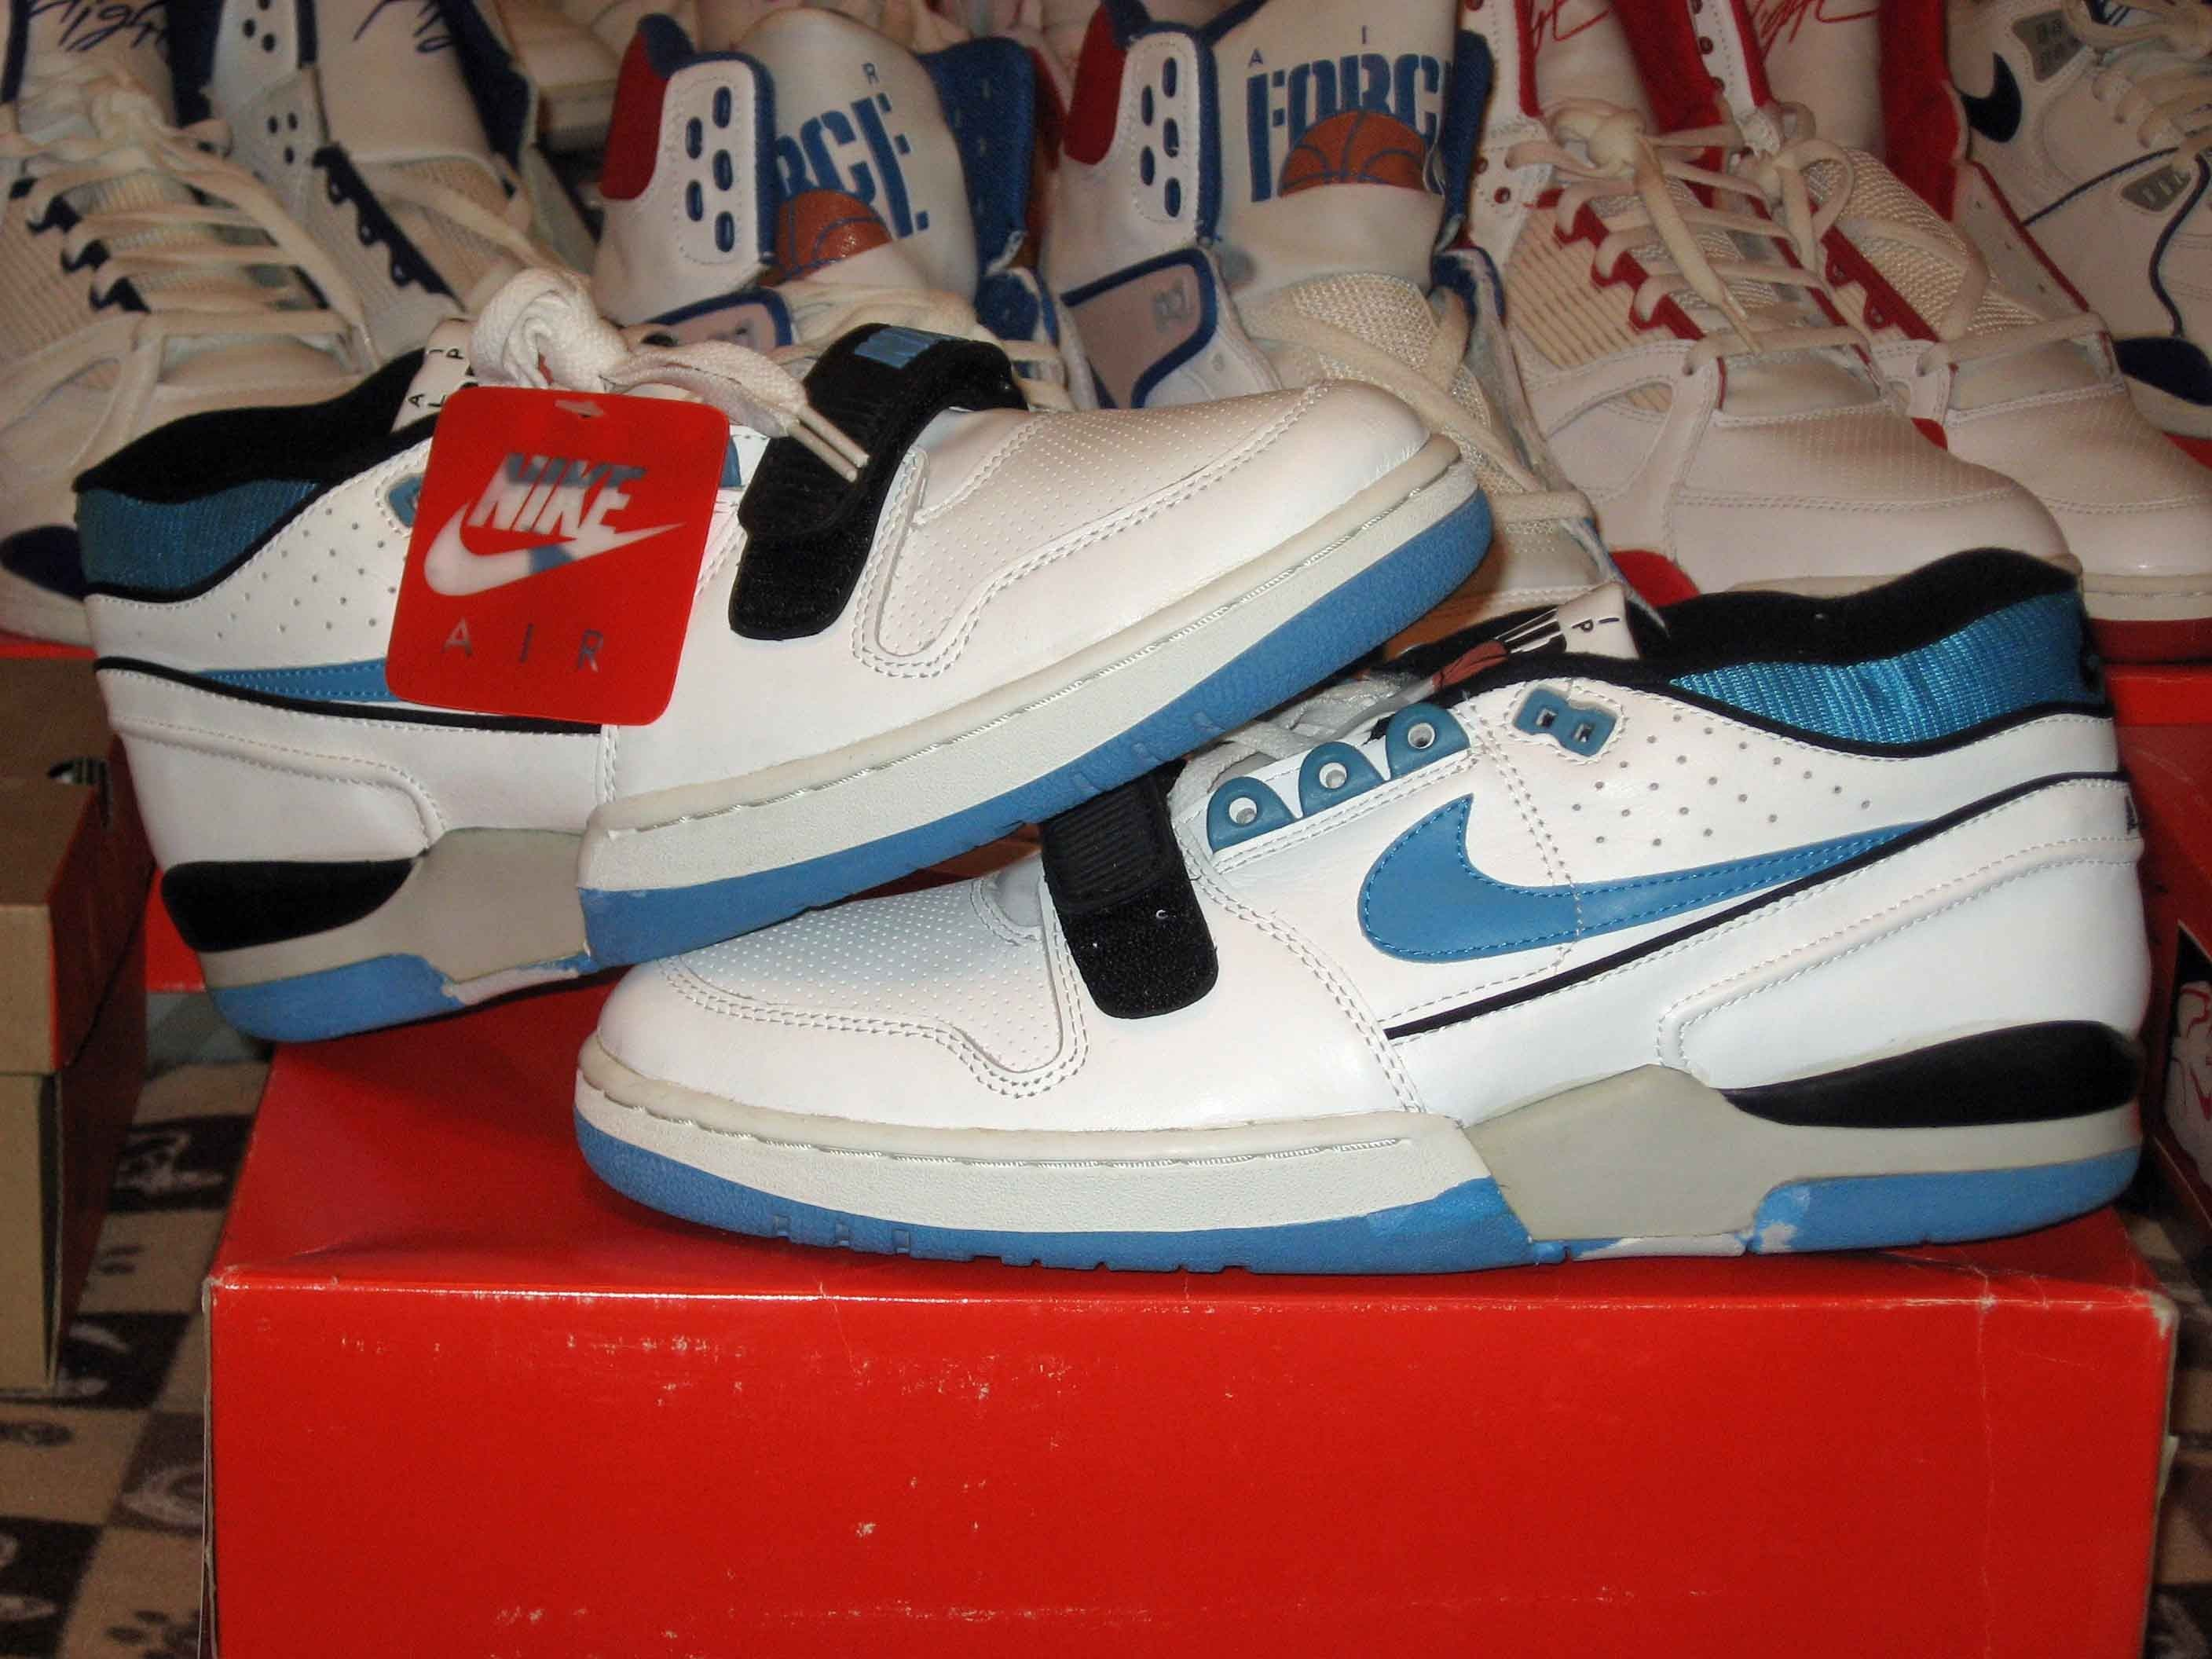 nike vandal 1993 charles barkley shoes